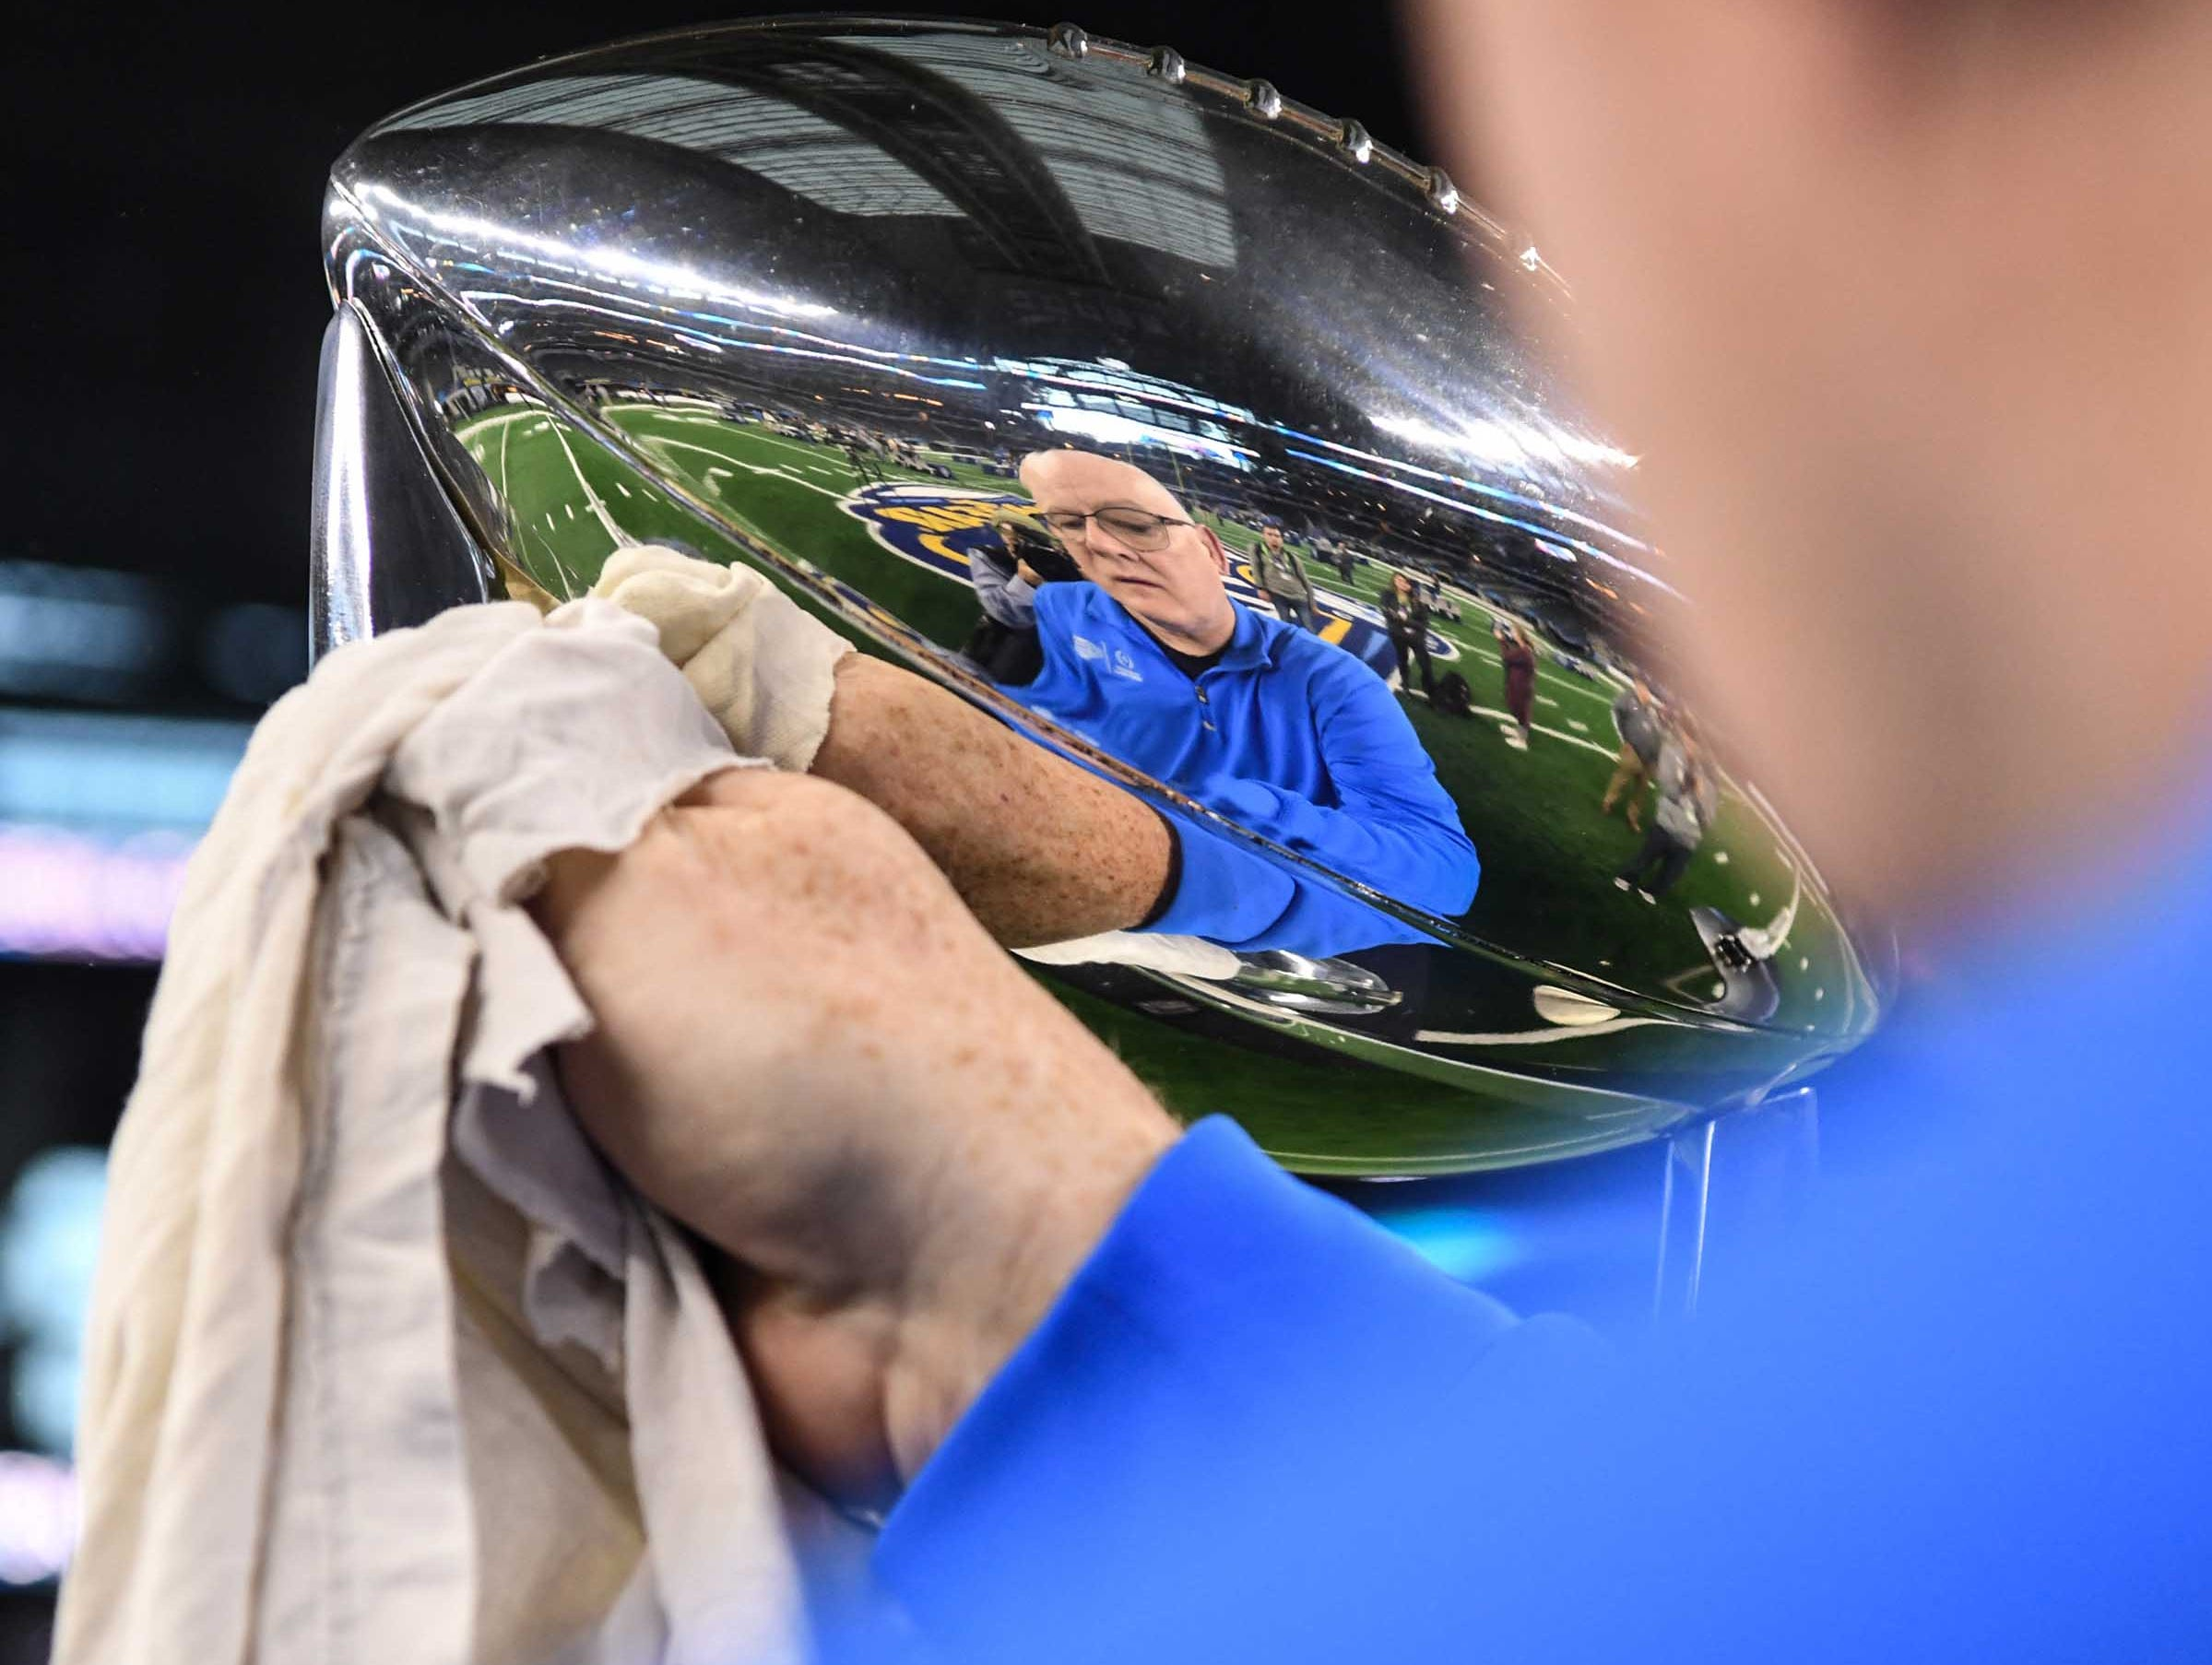 Marty MacInnis of the Cotton Bowl polishes the game trophy during Media Day for Clemson and Notre Dame at the AT&T Stadium in Dallas December 27, 2018.